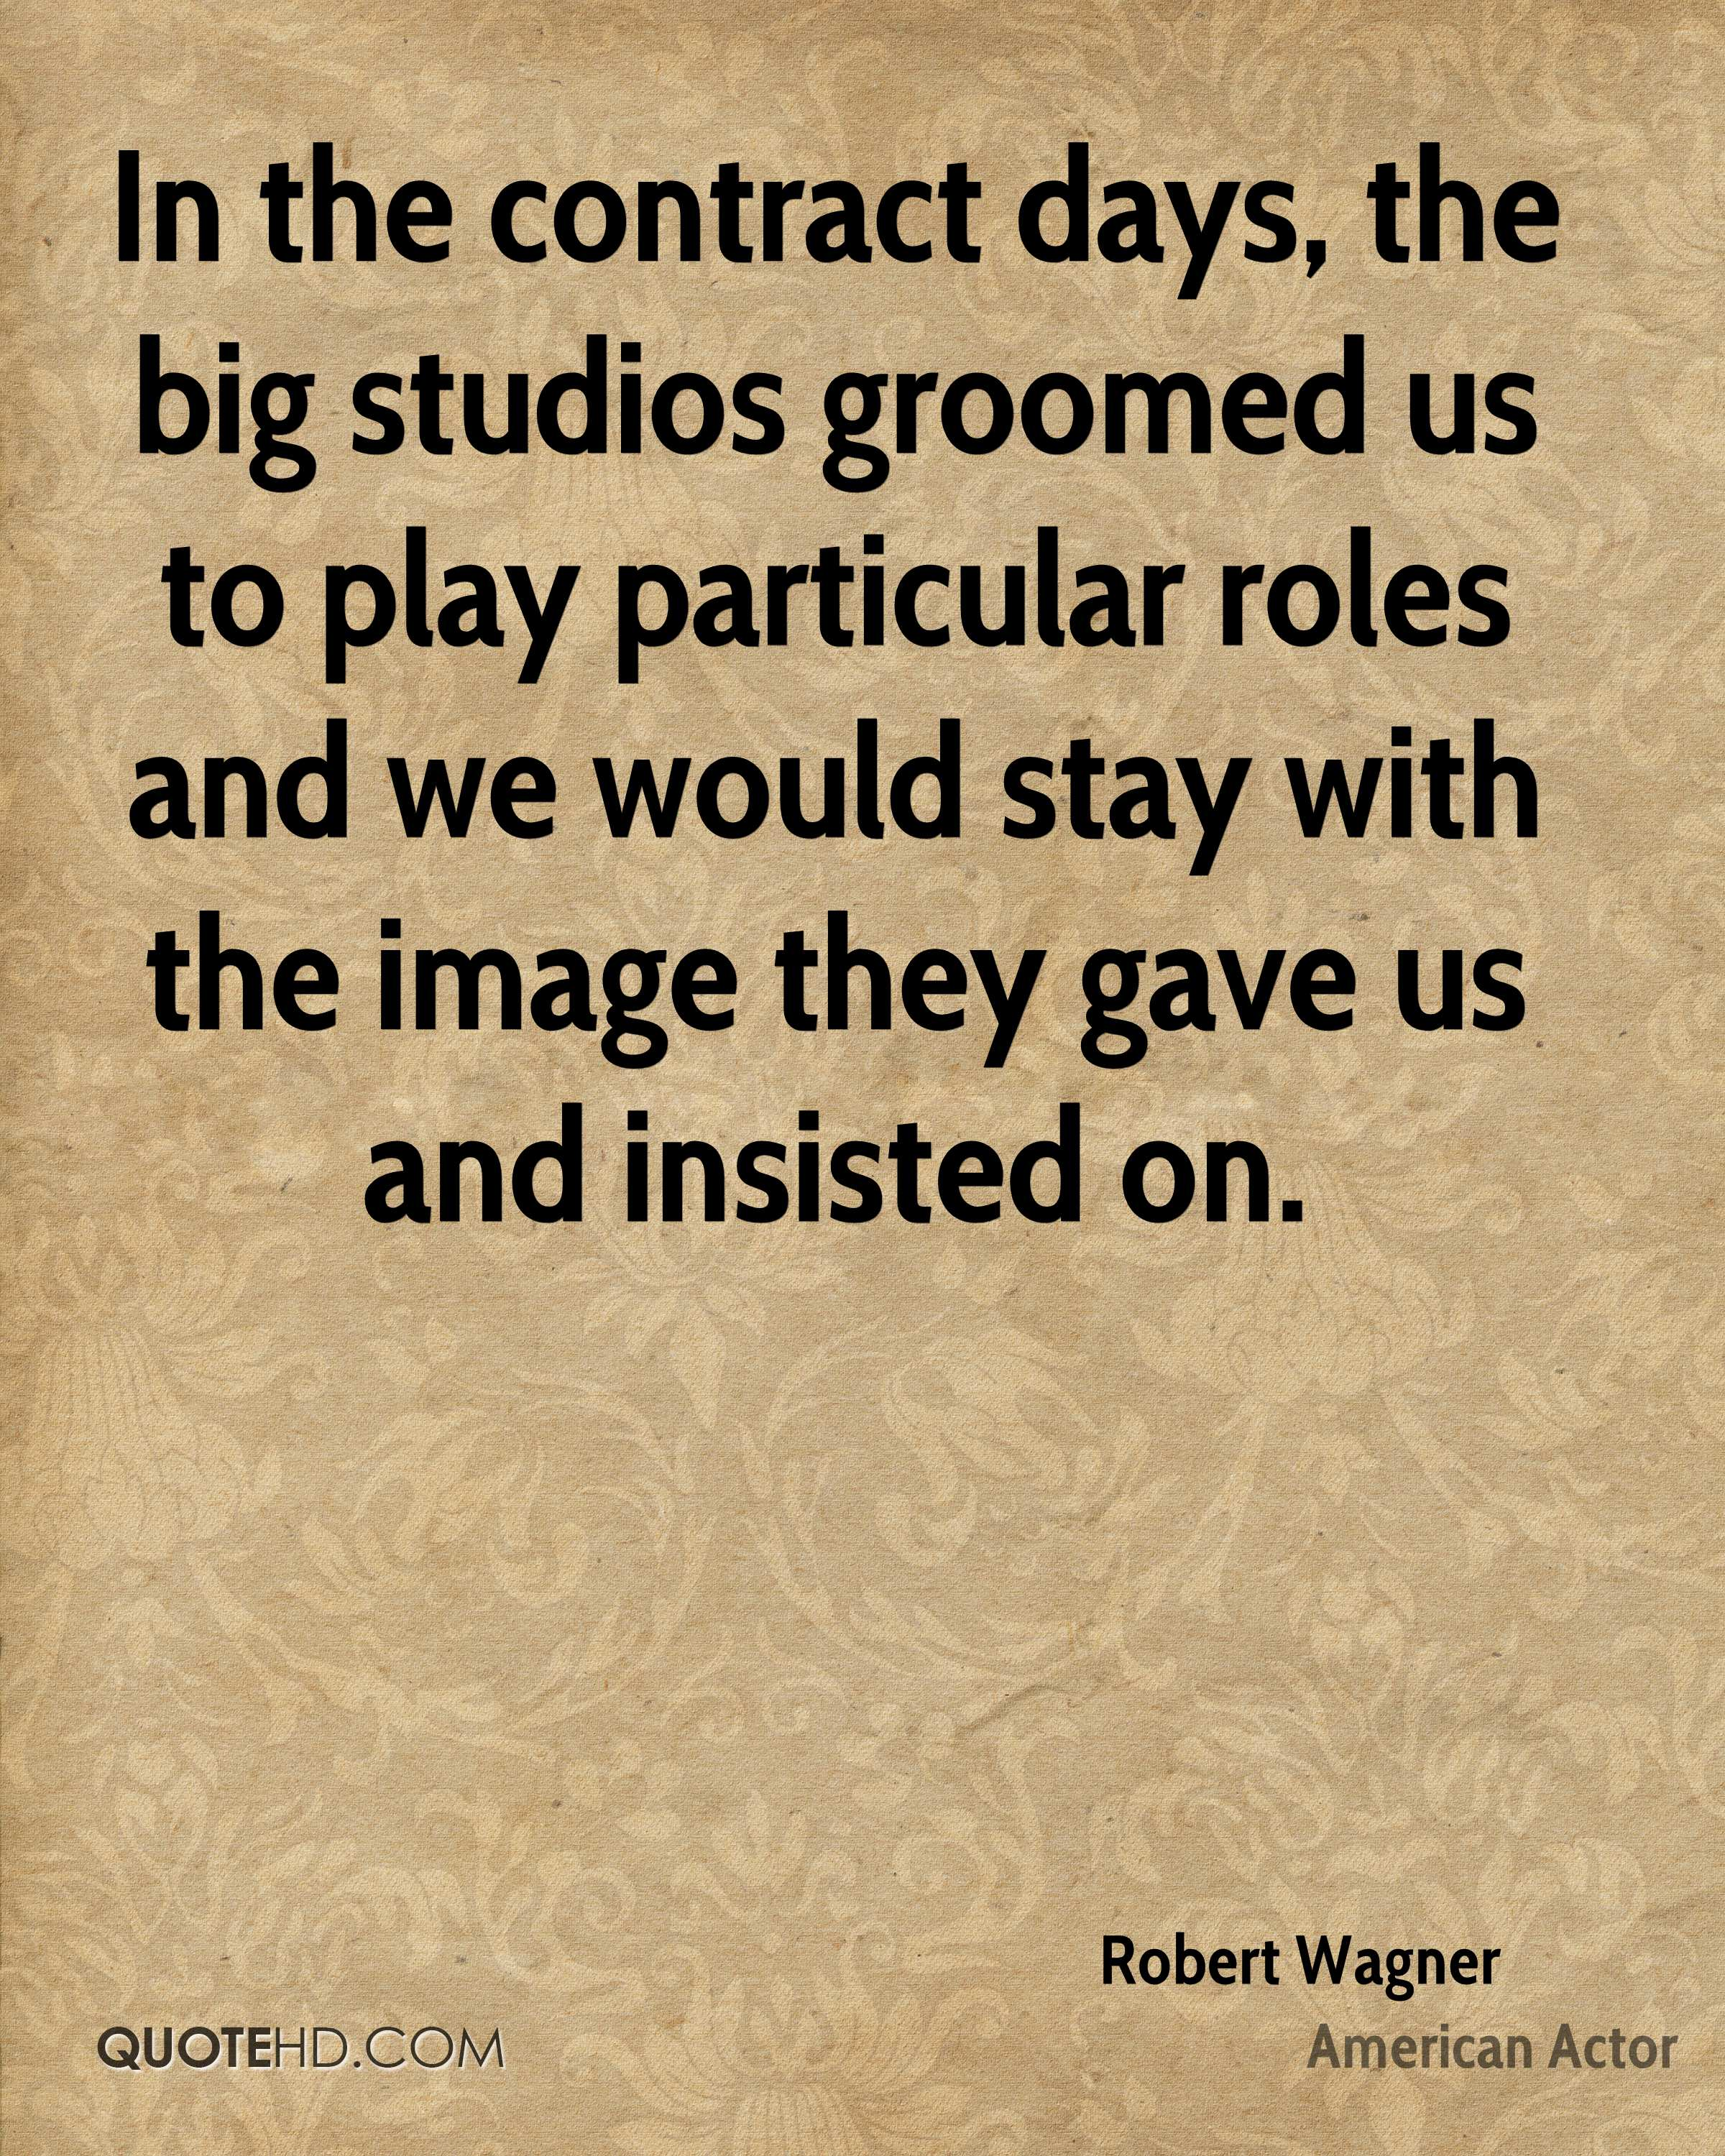 In the contract days, the big studios groomed us to play particular roles and we would stay with the image they gave us and insisted on.